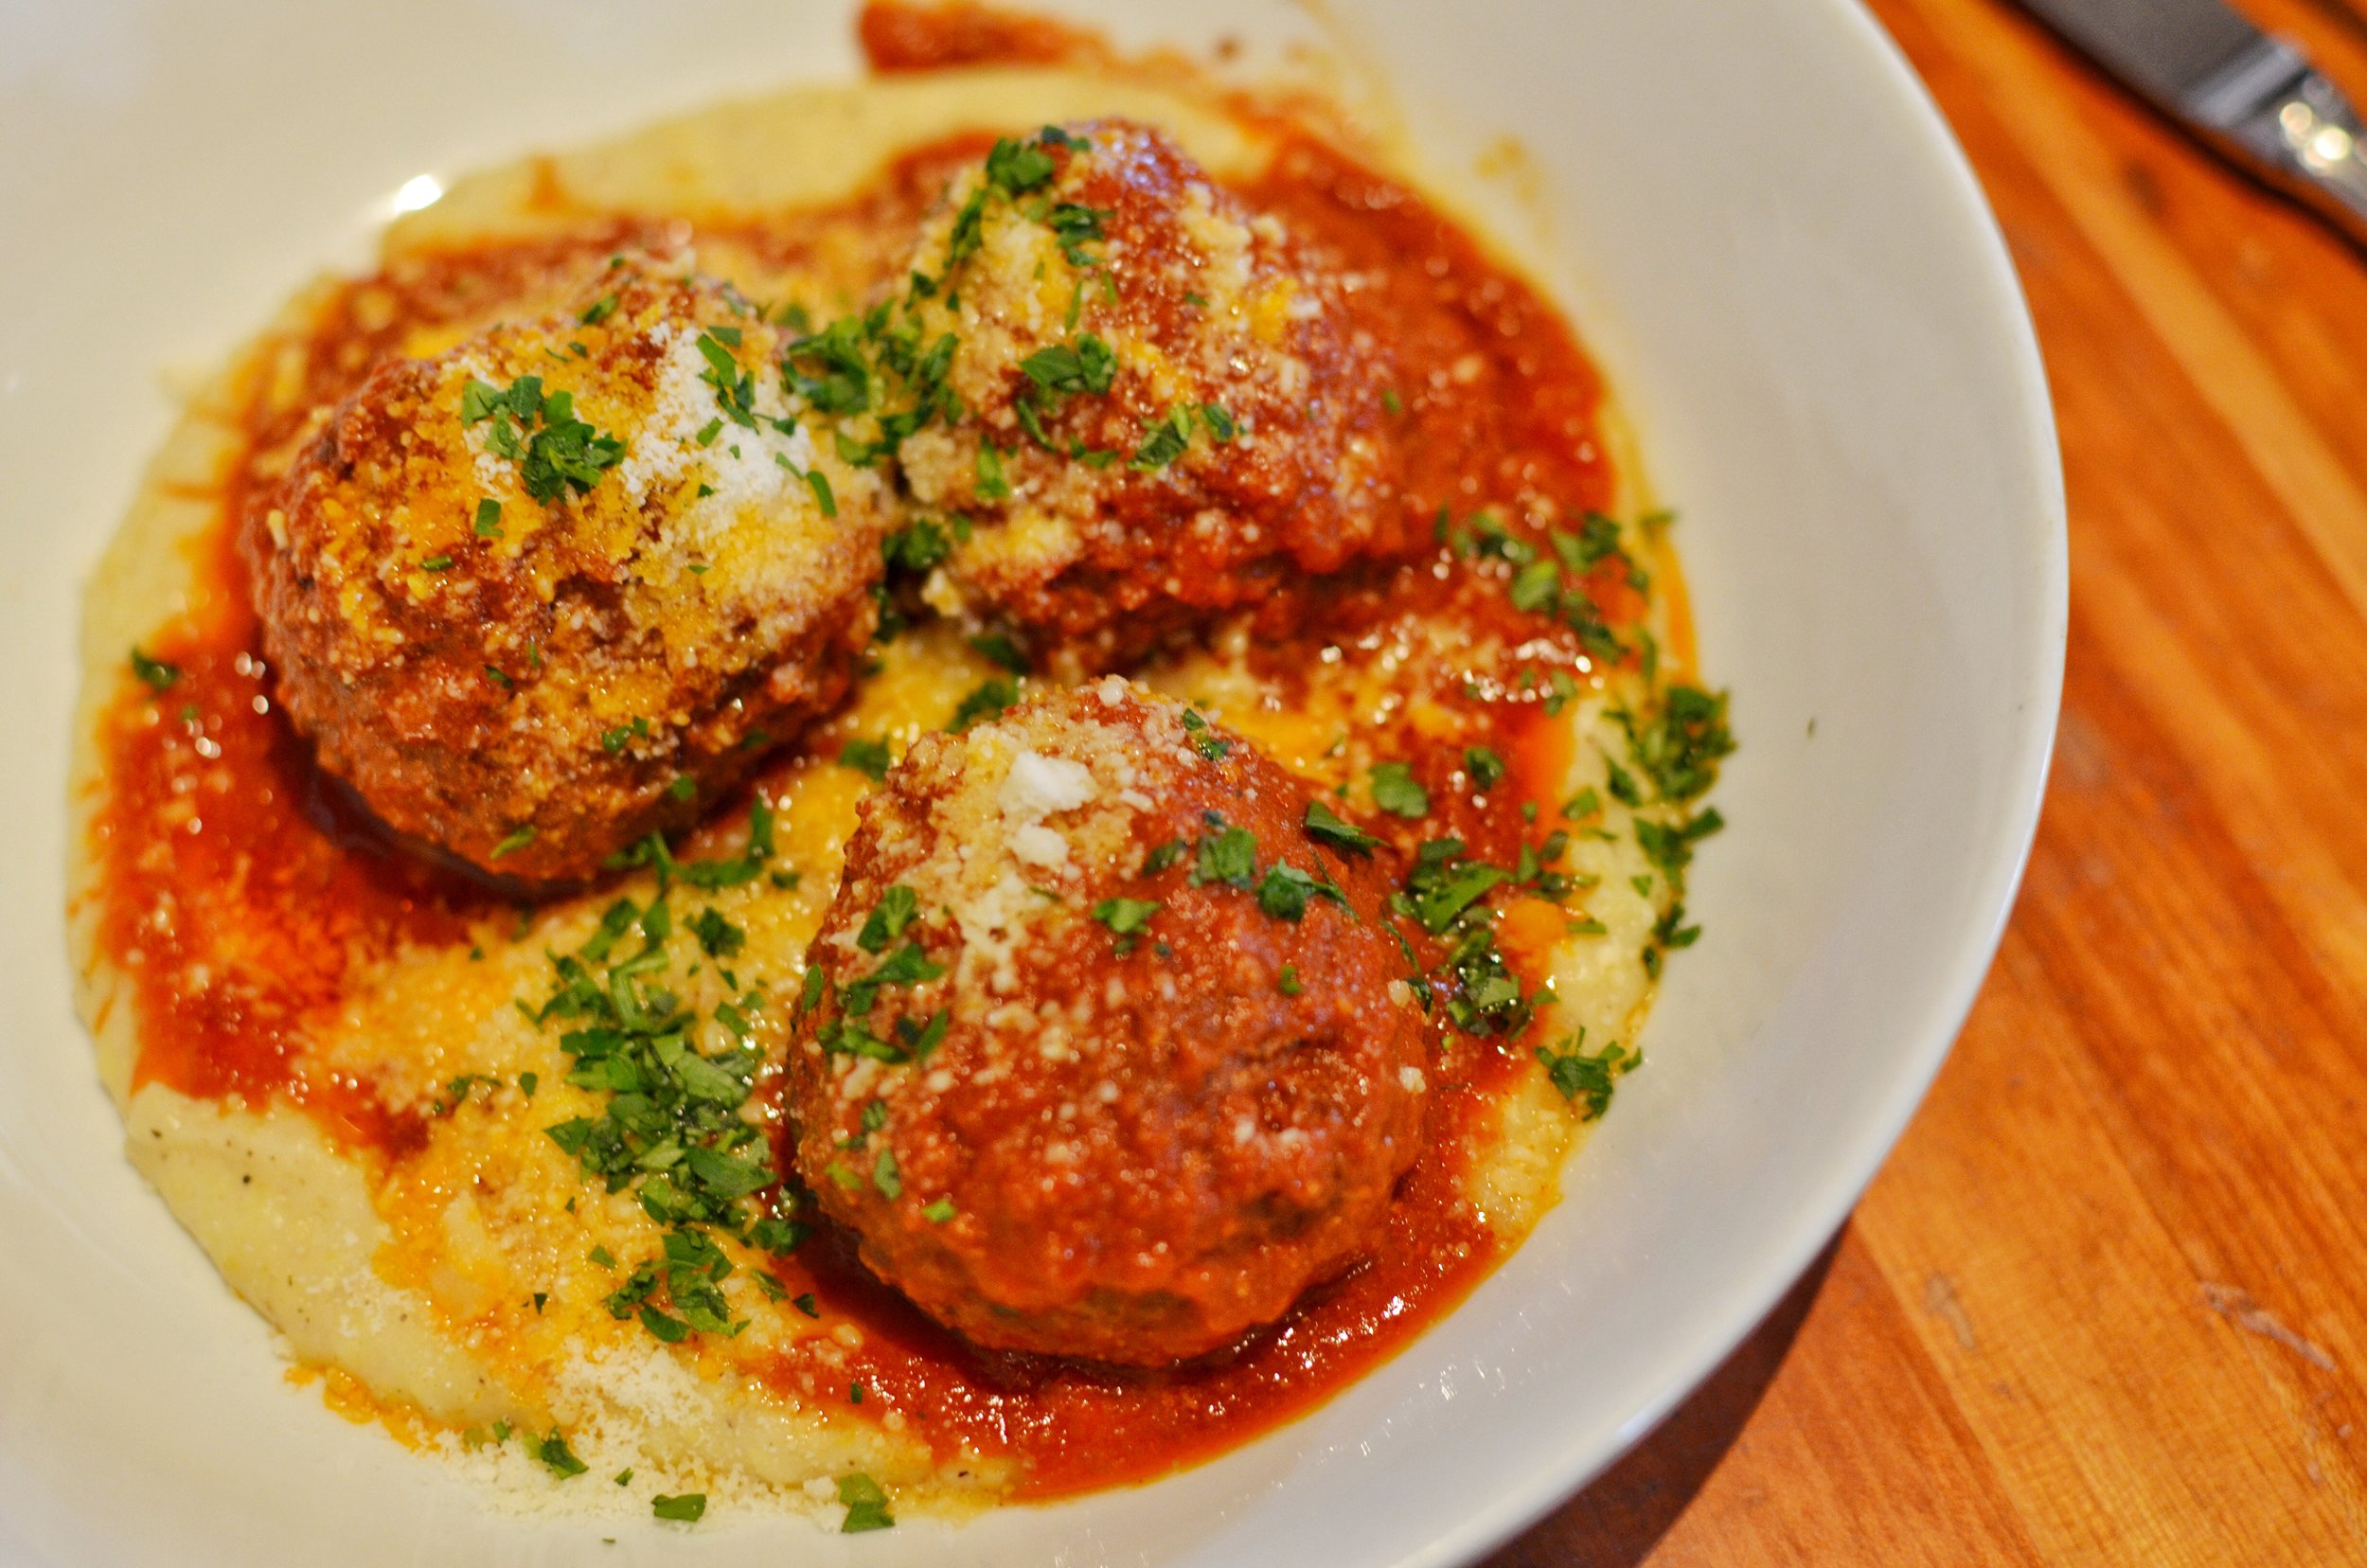 Beef and ricotta meatballs with creamy parmasean polenta